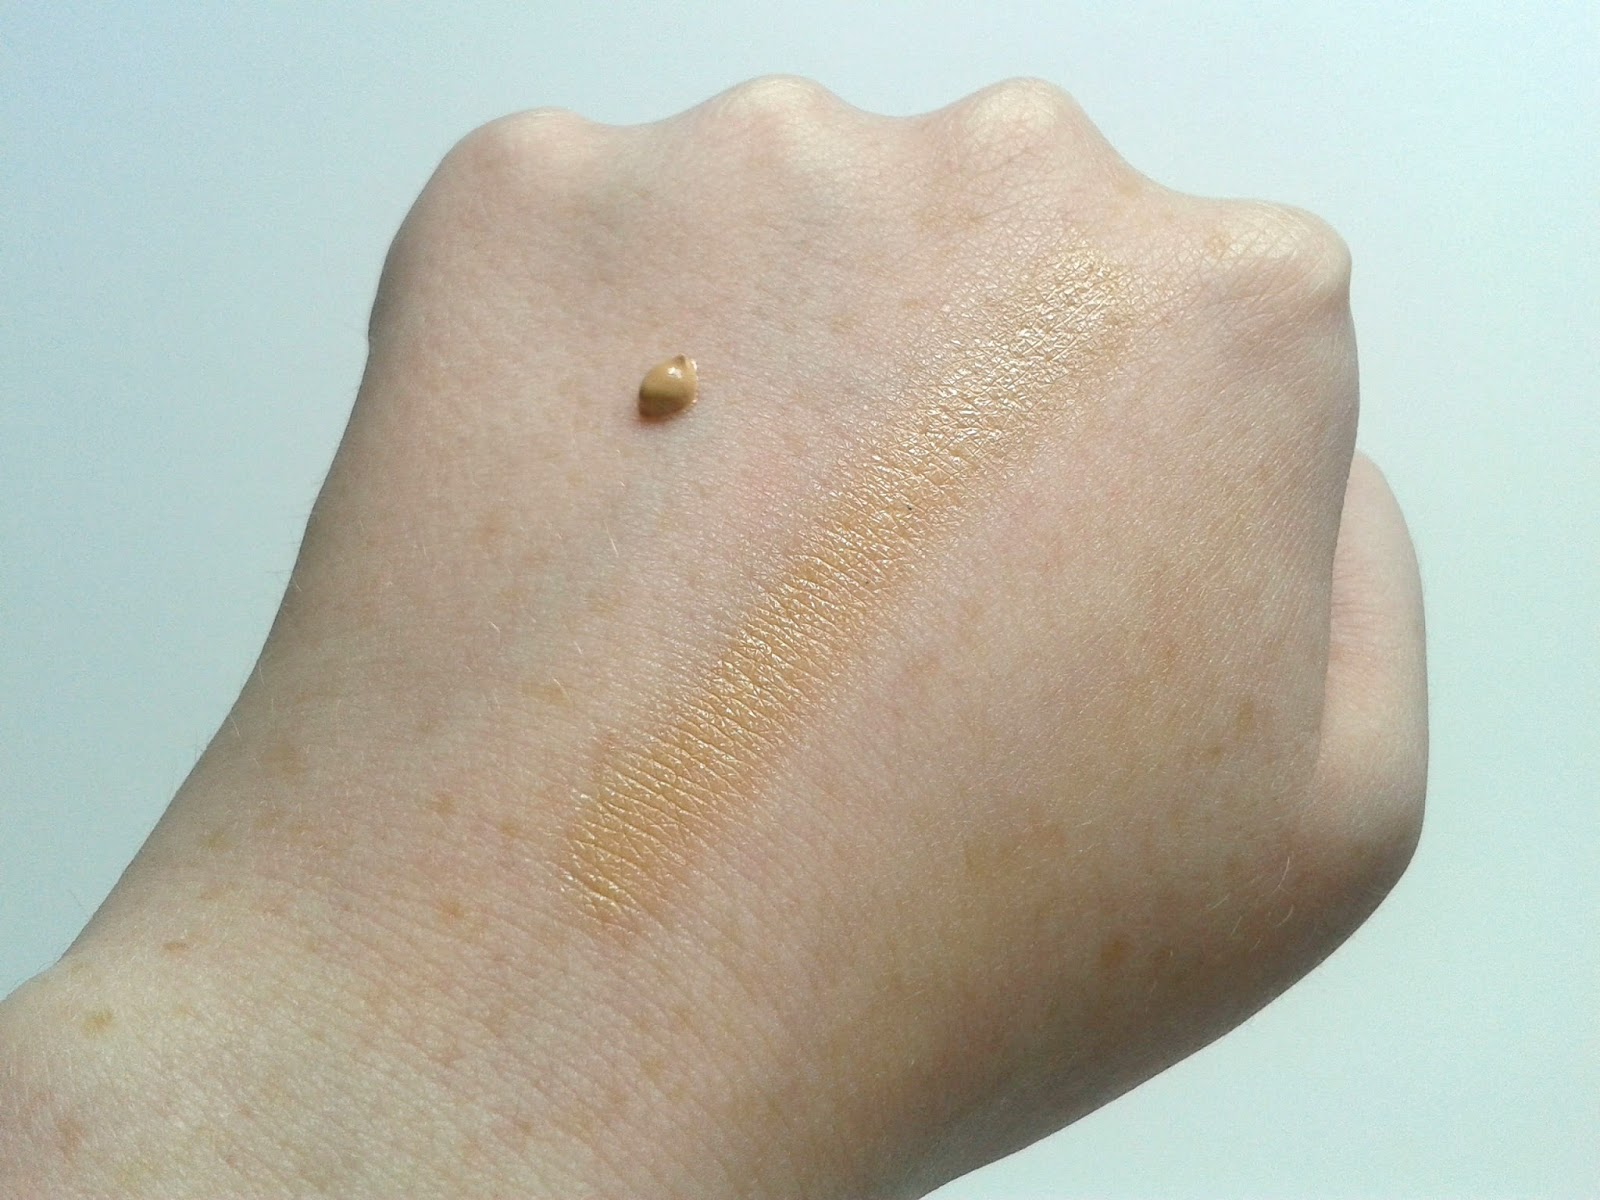 Balance Me BB Natural Perfection SPF 25 Beauty Review Swatches